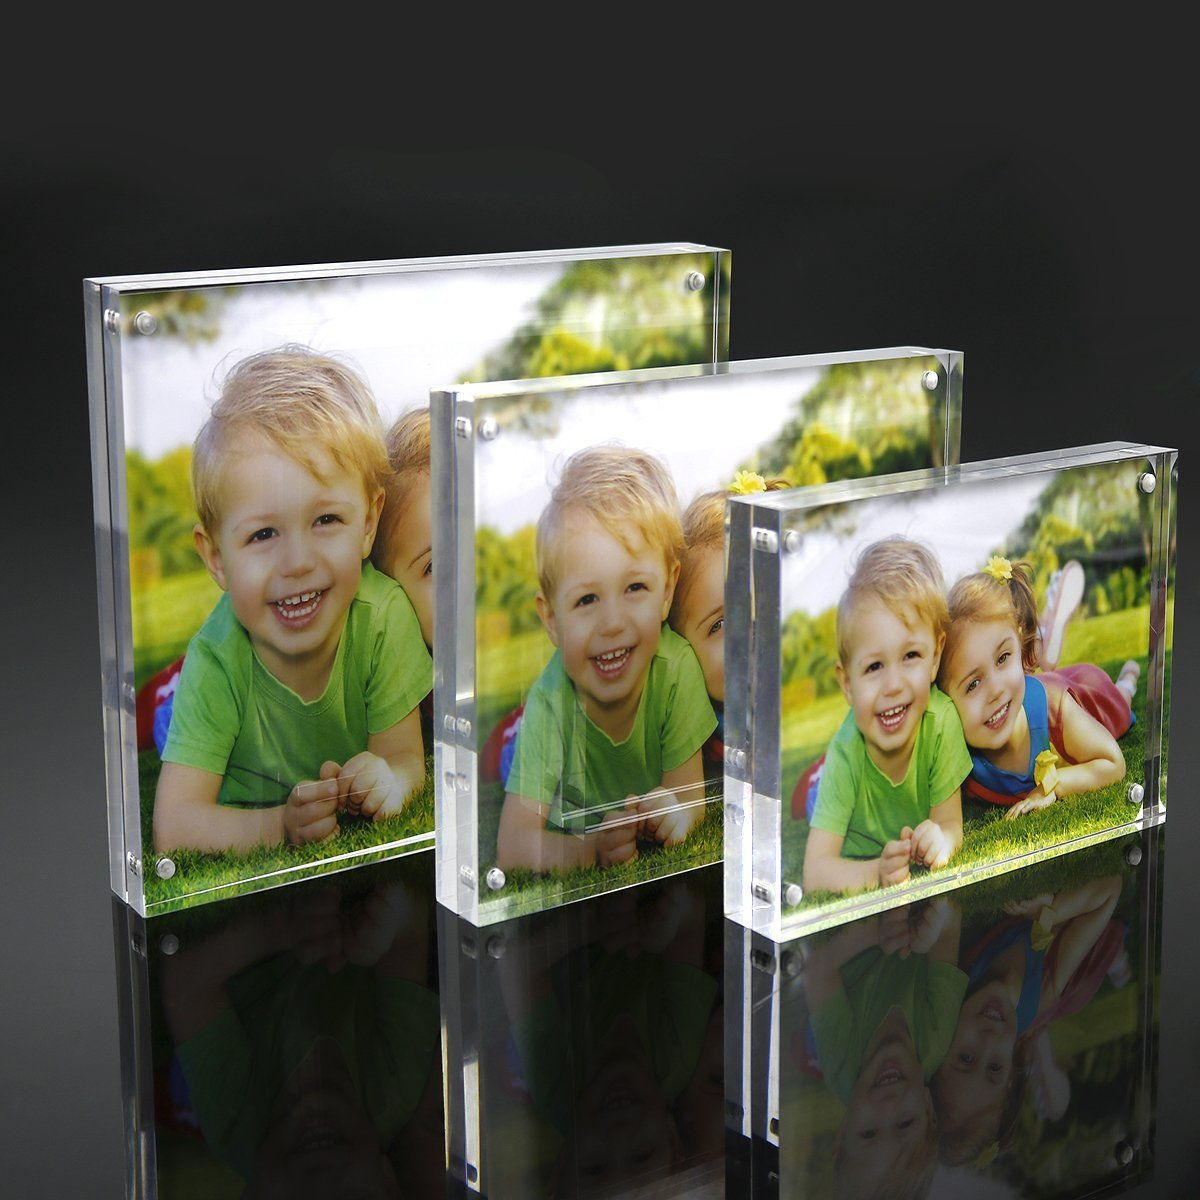 2018 Acrylic Framesclear 5x7 Double Sided Acrylic Picture Frame